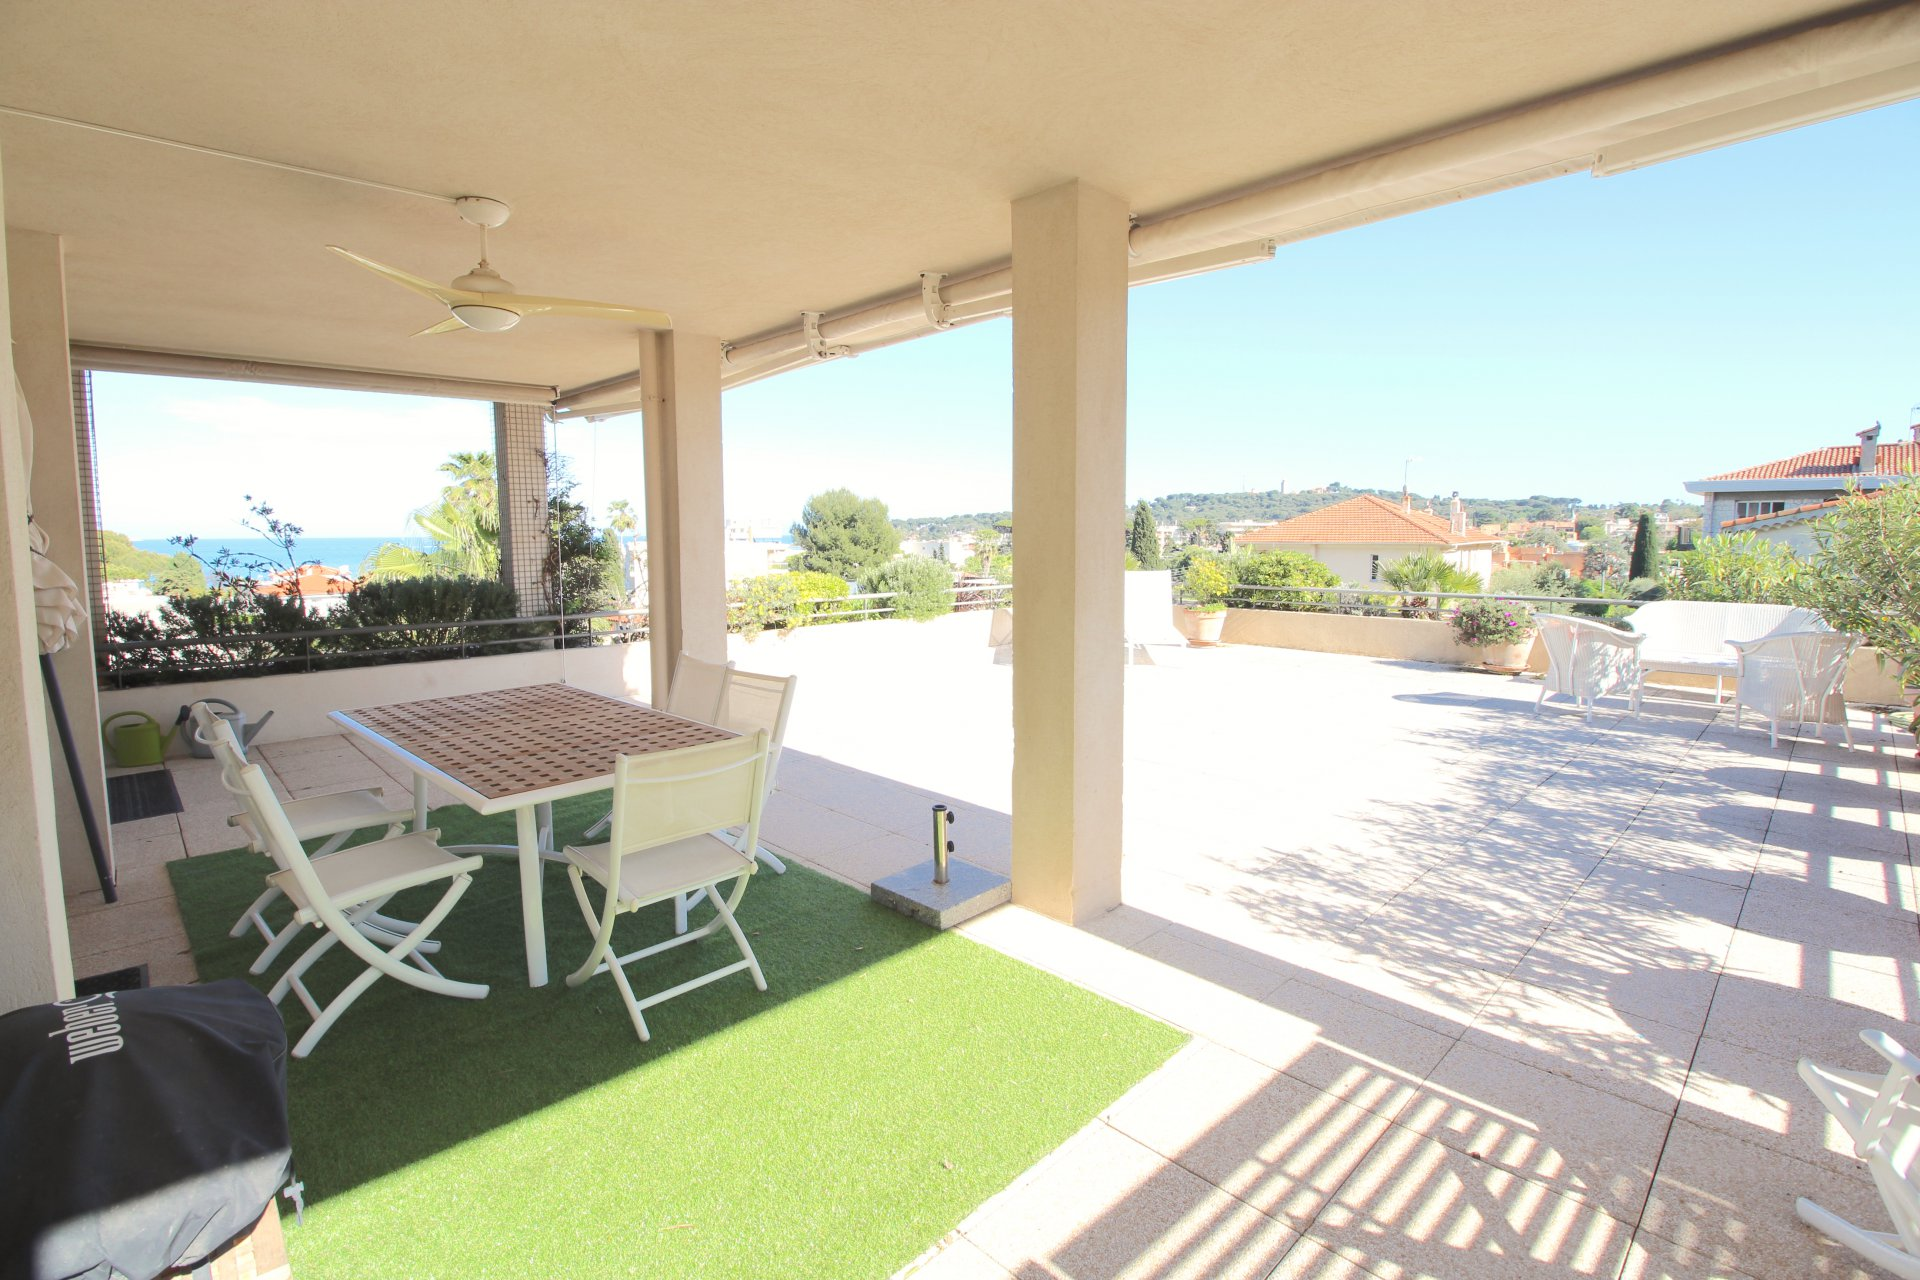 TOP ROOF TERRACE SOLE AGENT